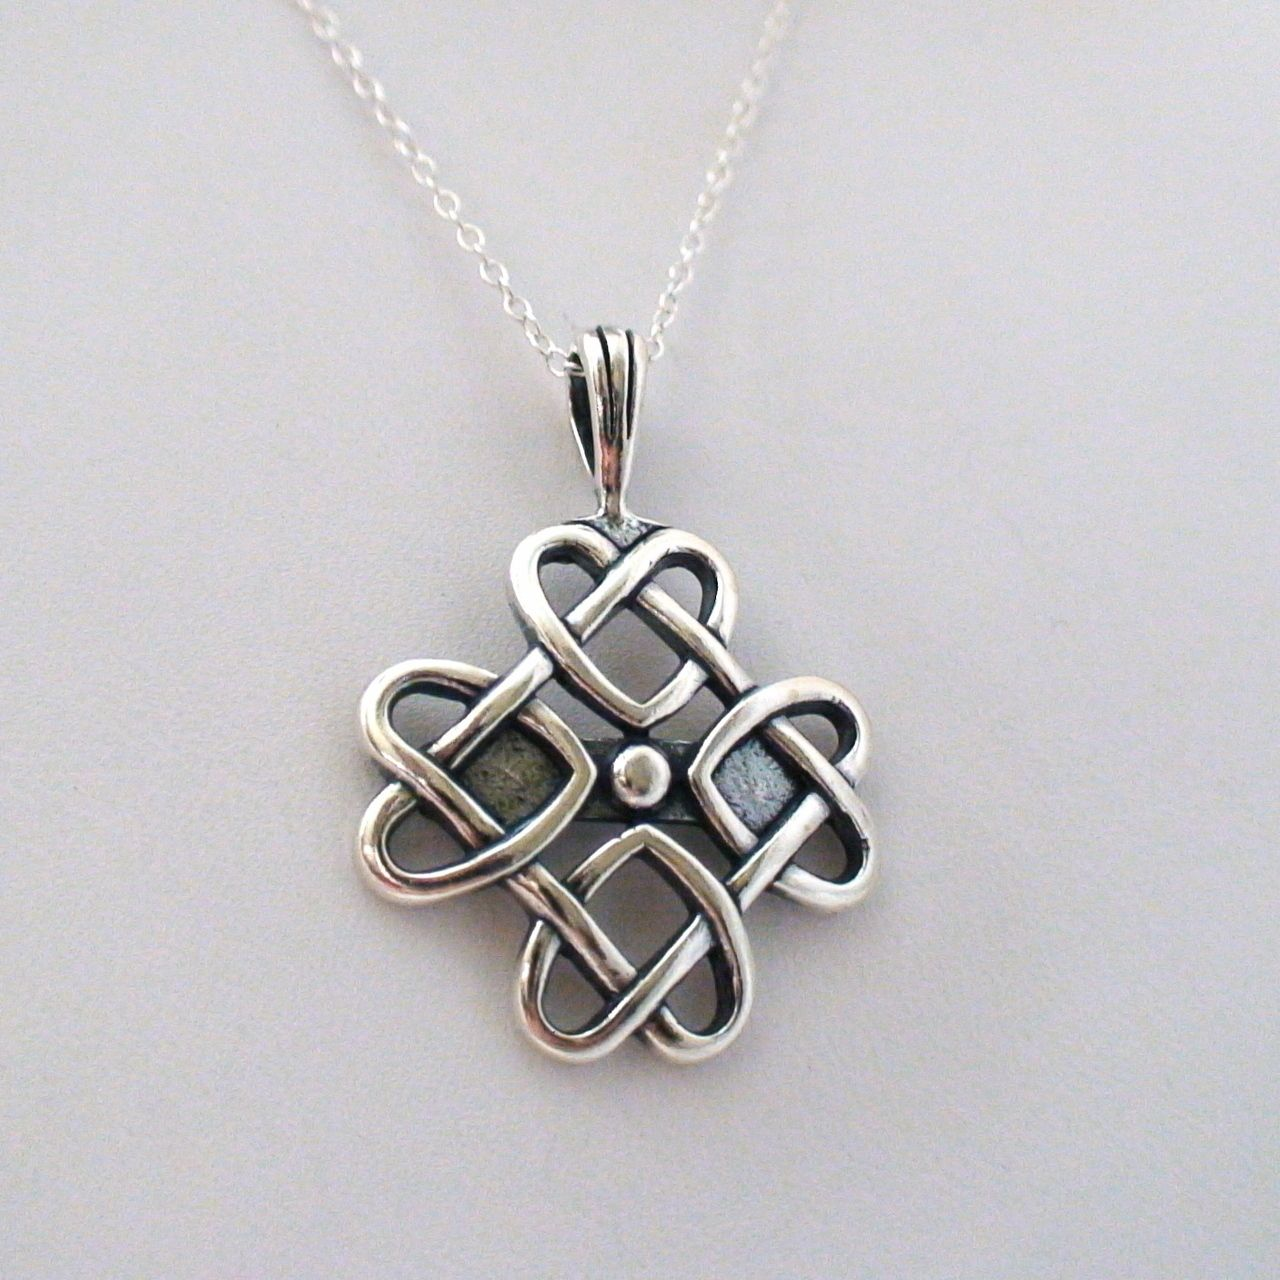 Celtic Love Knot Necklace - 925 Sterling Silver | κοσμηματα ...